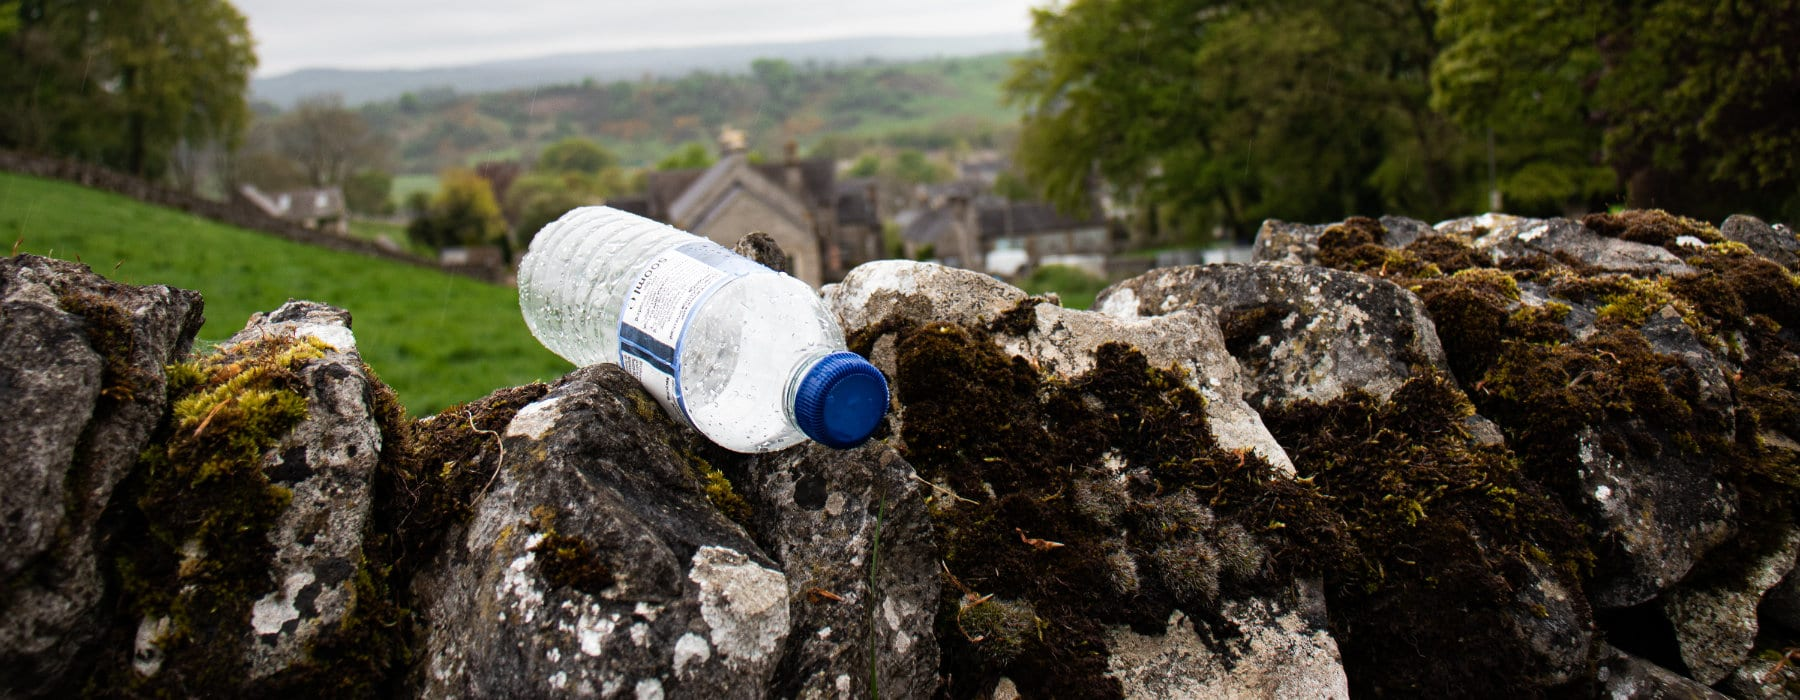 Plastic bottle on wall in countryside